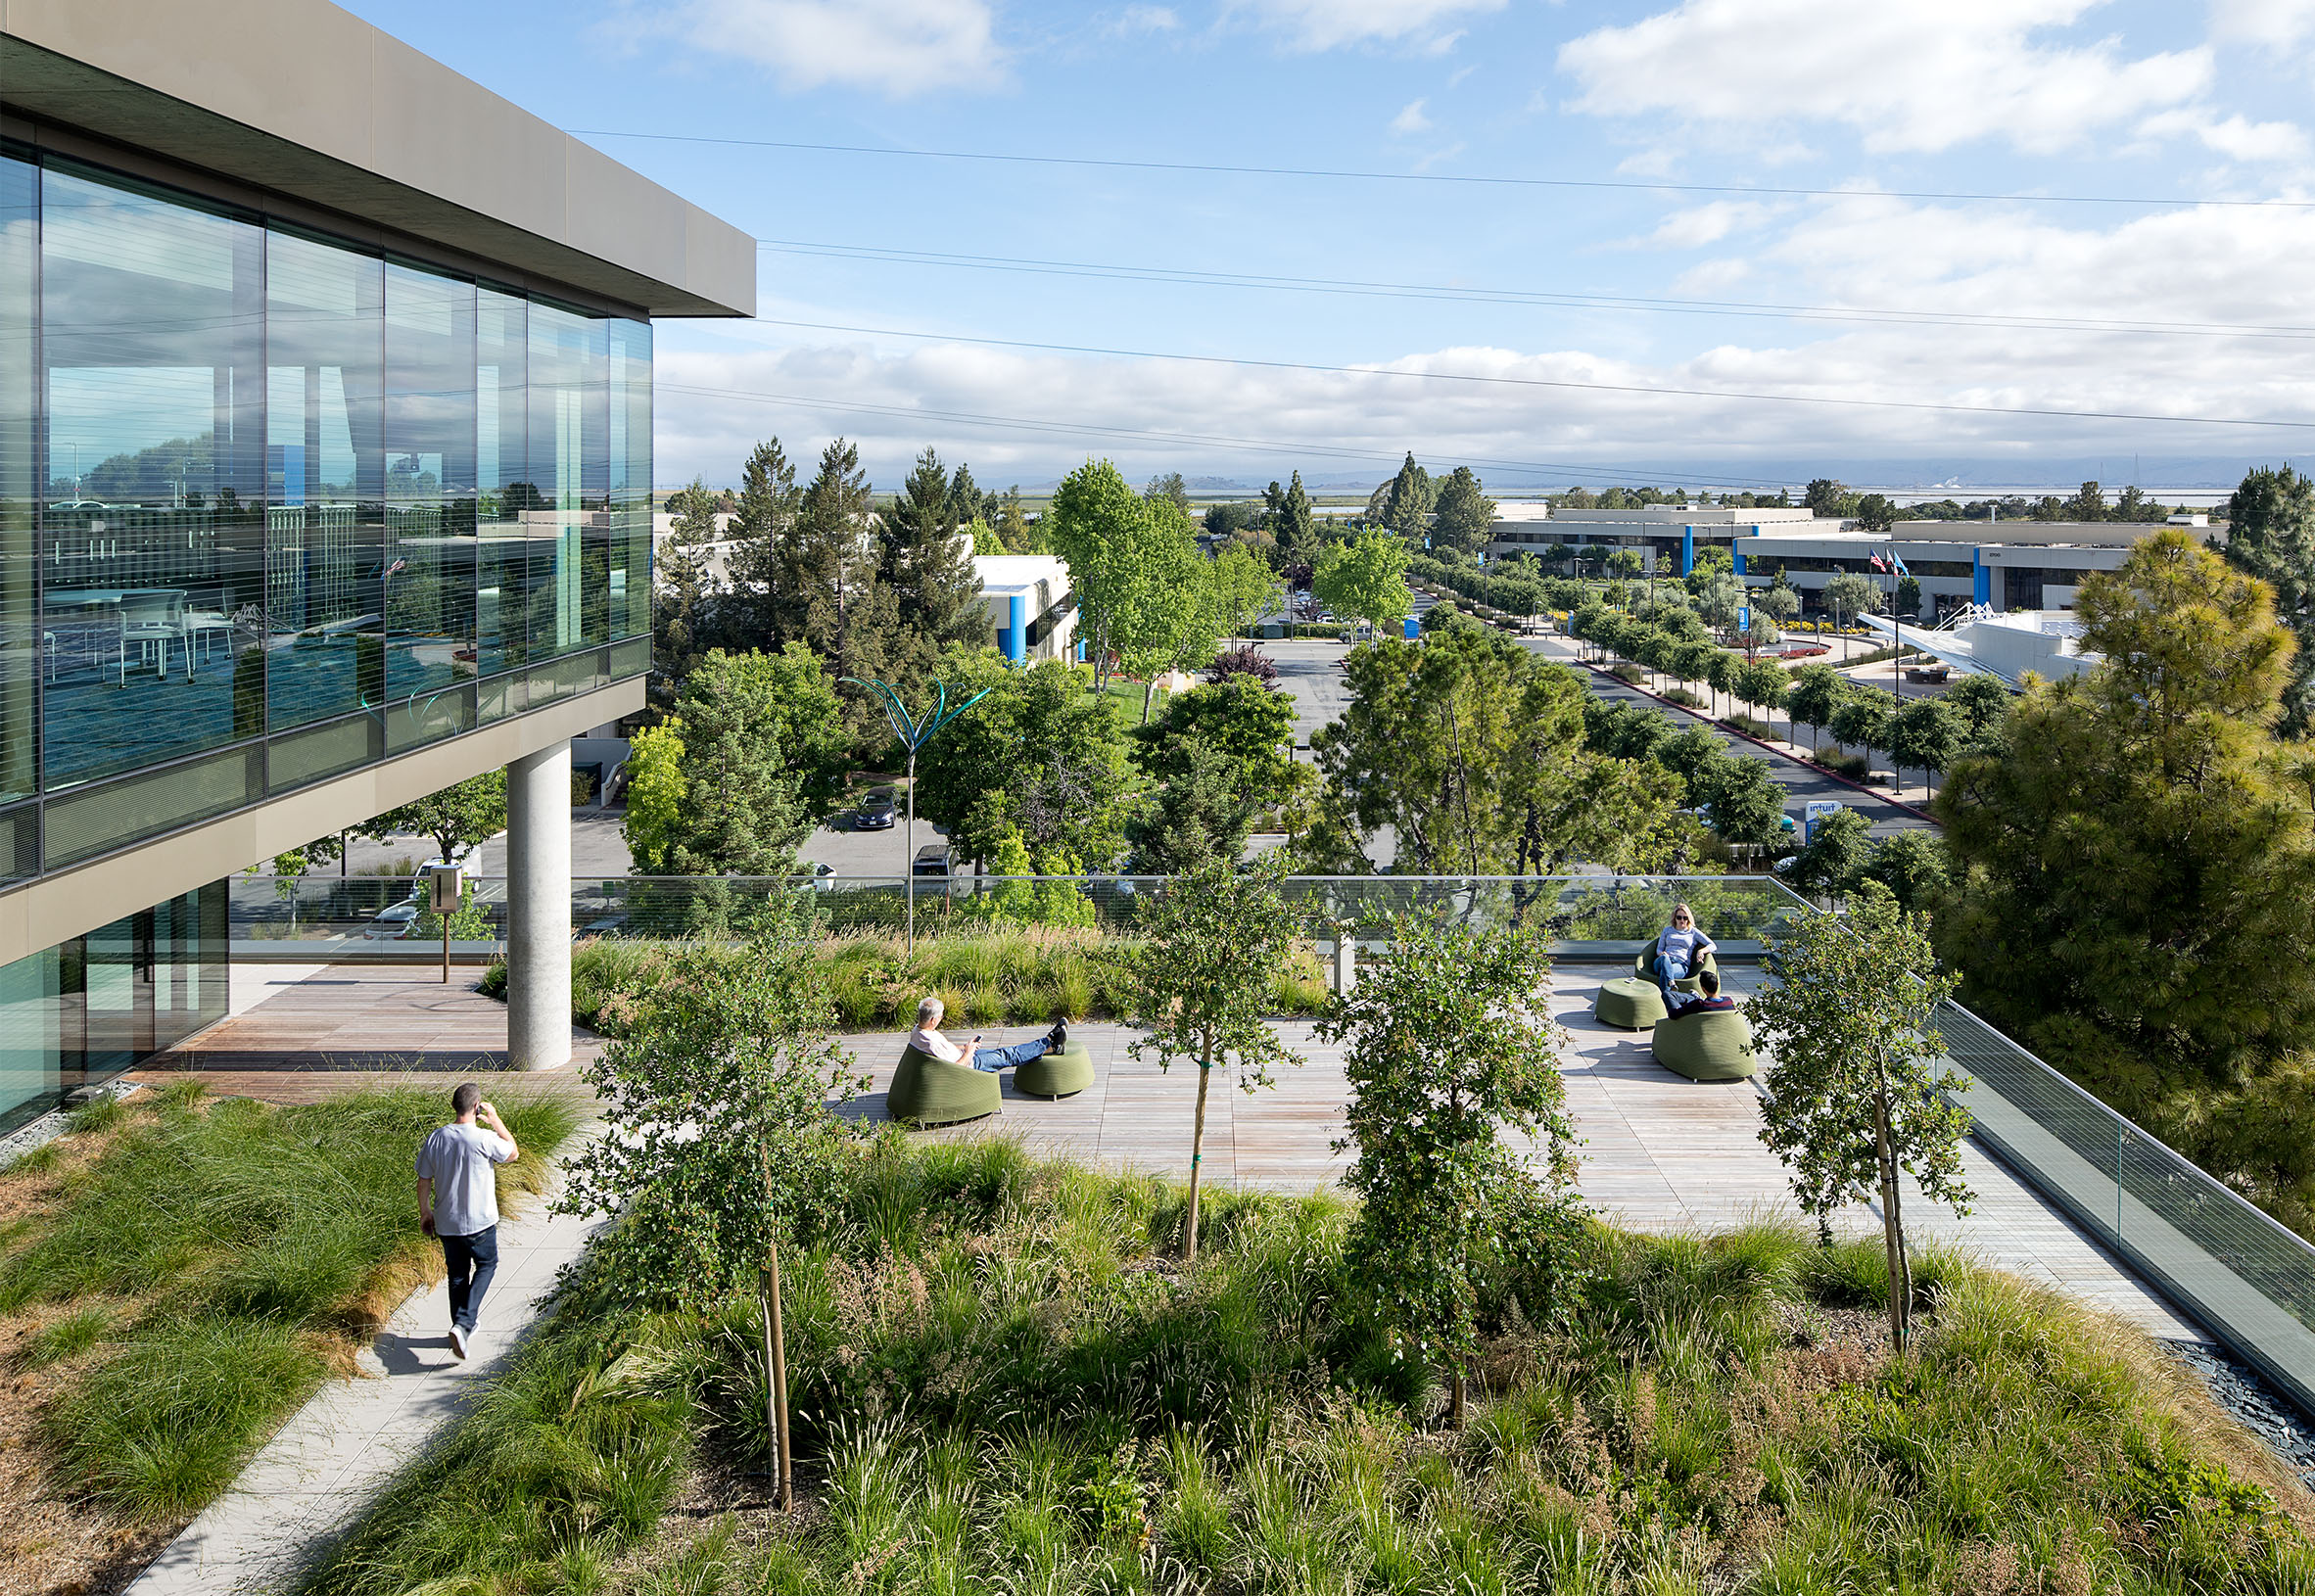 Intuit Green Roof Deck with Landscaping and Employees